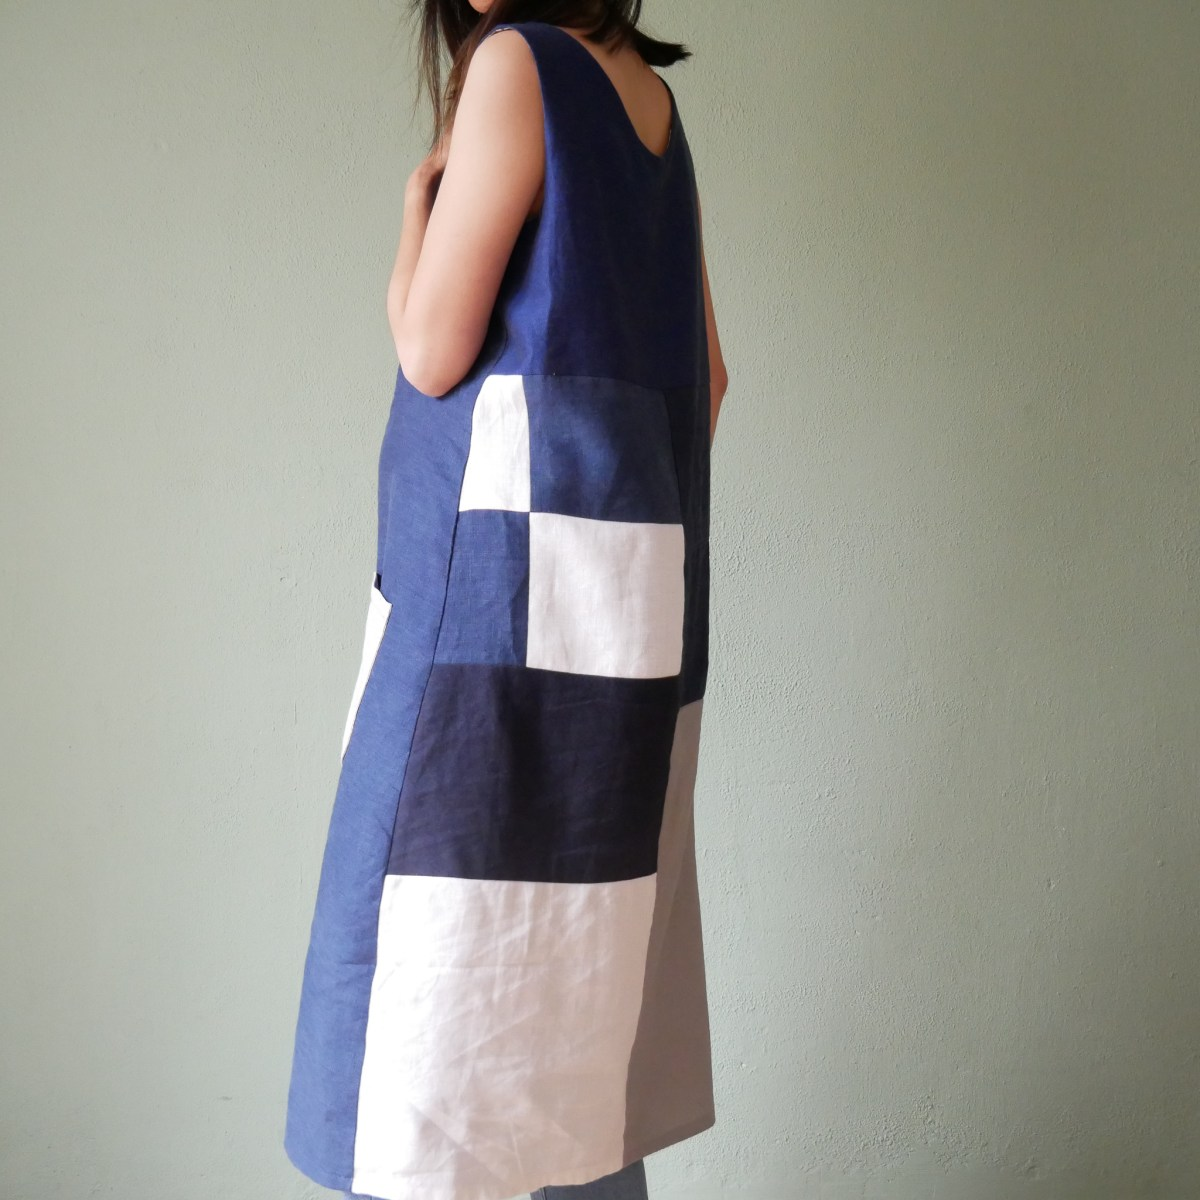 patchwork dress made by author in blue and white